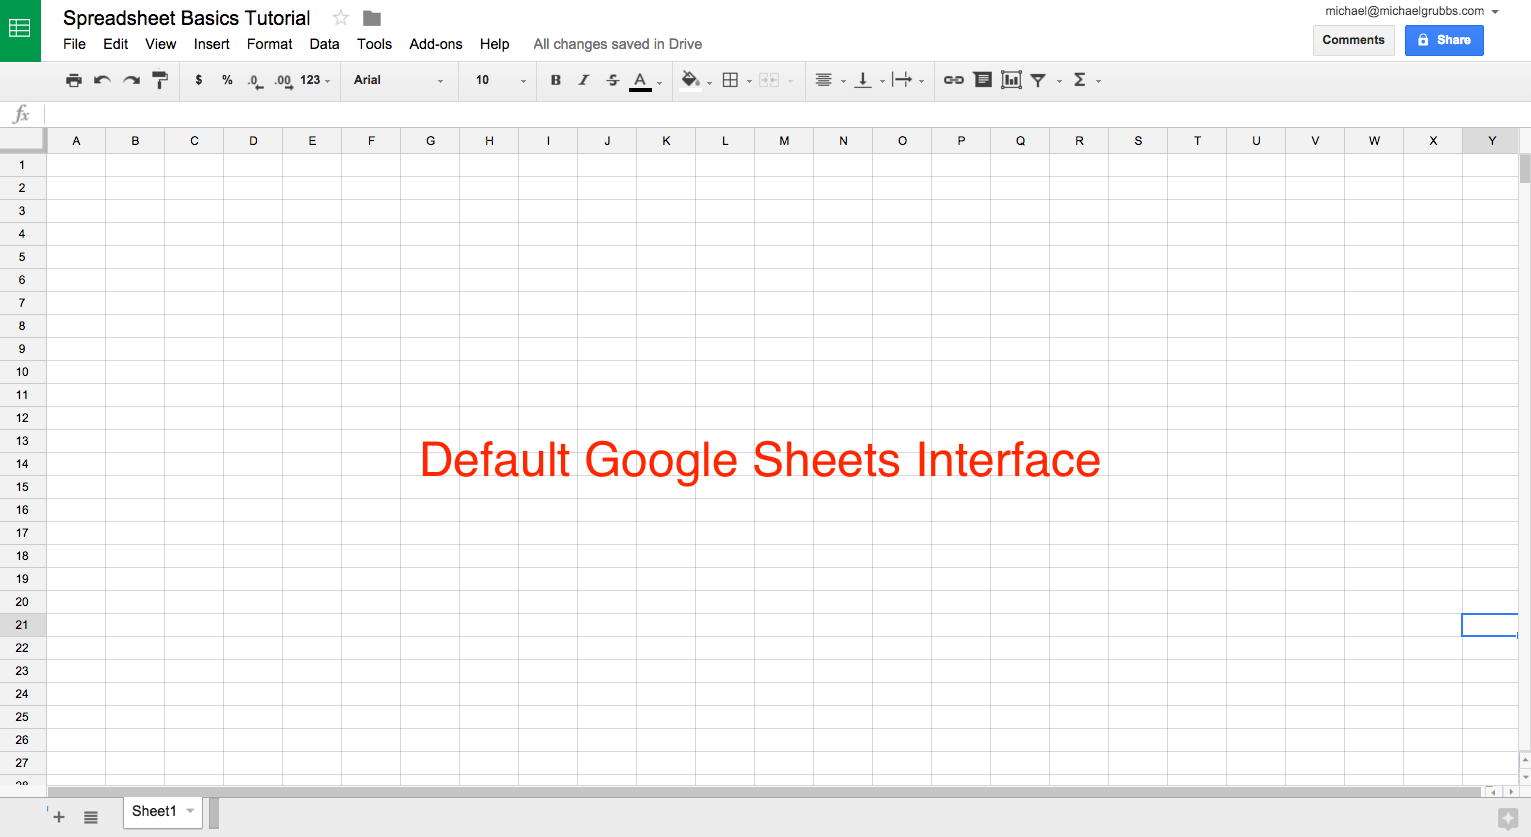 google spreadsheet basics tutorial